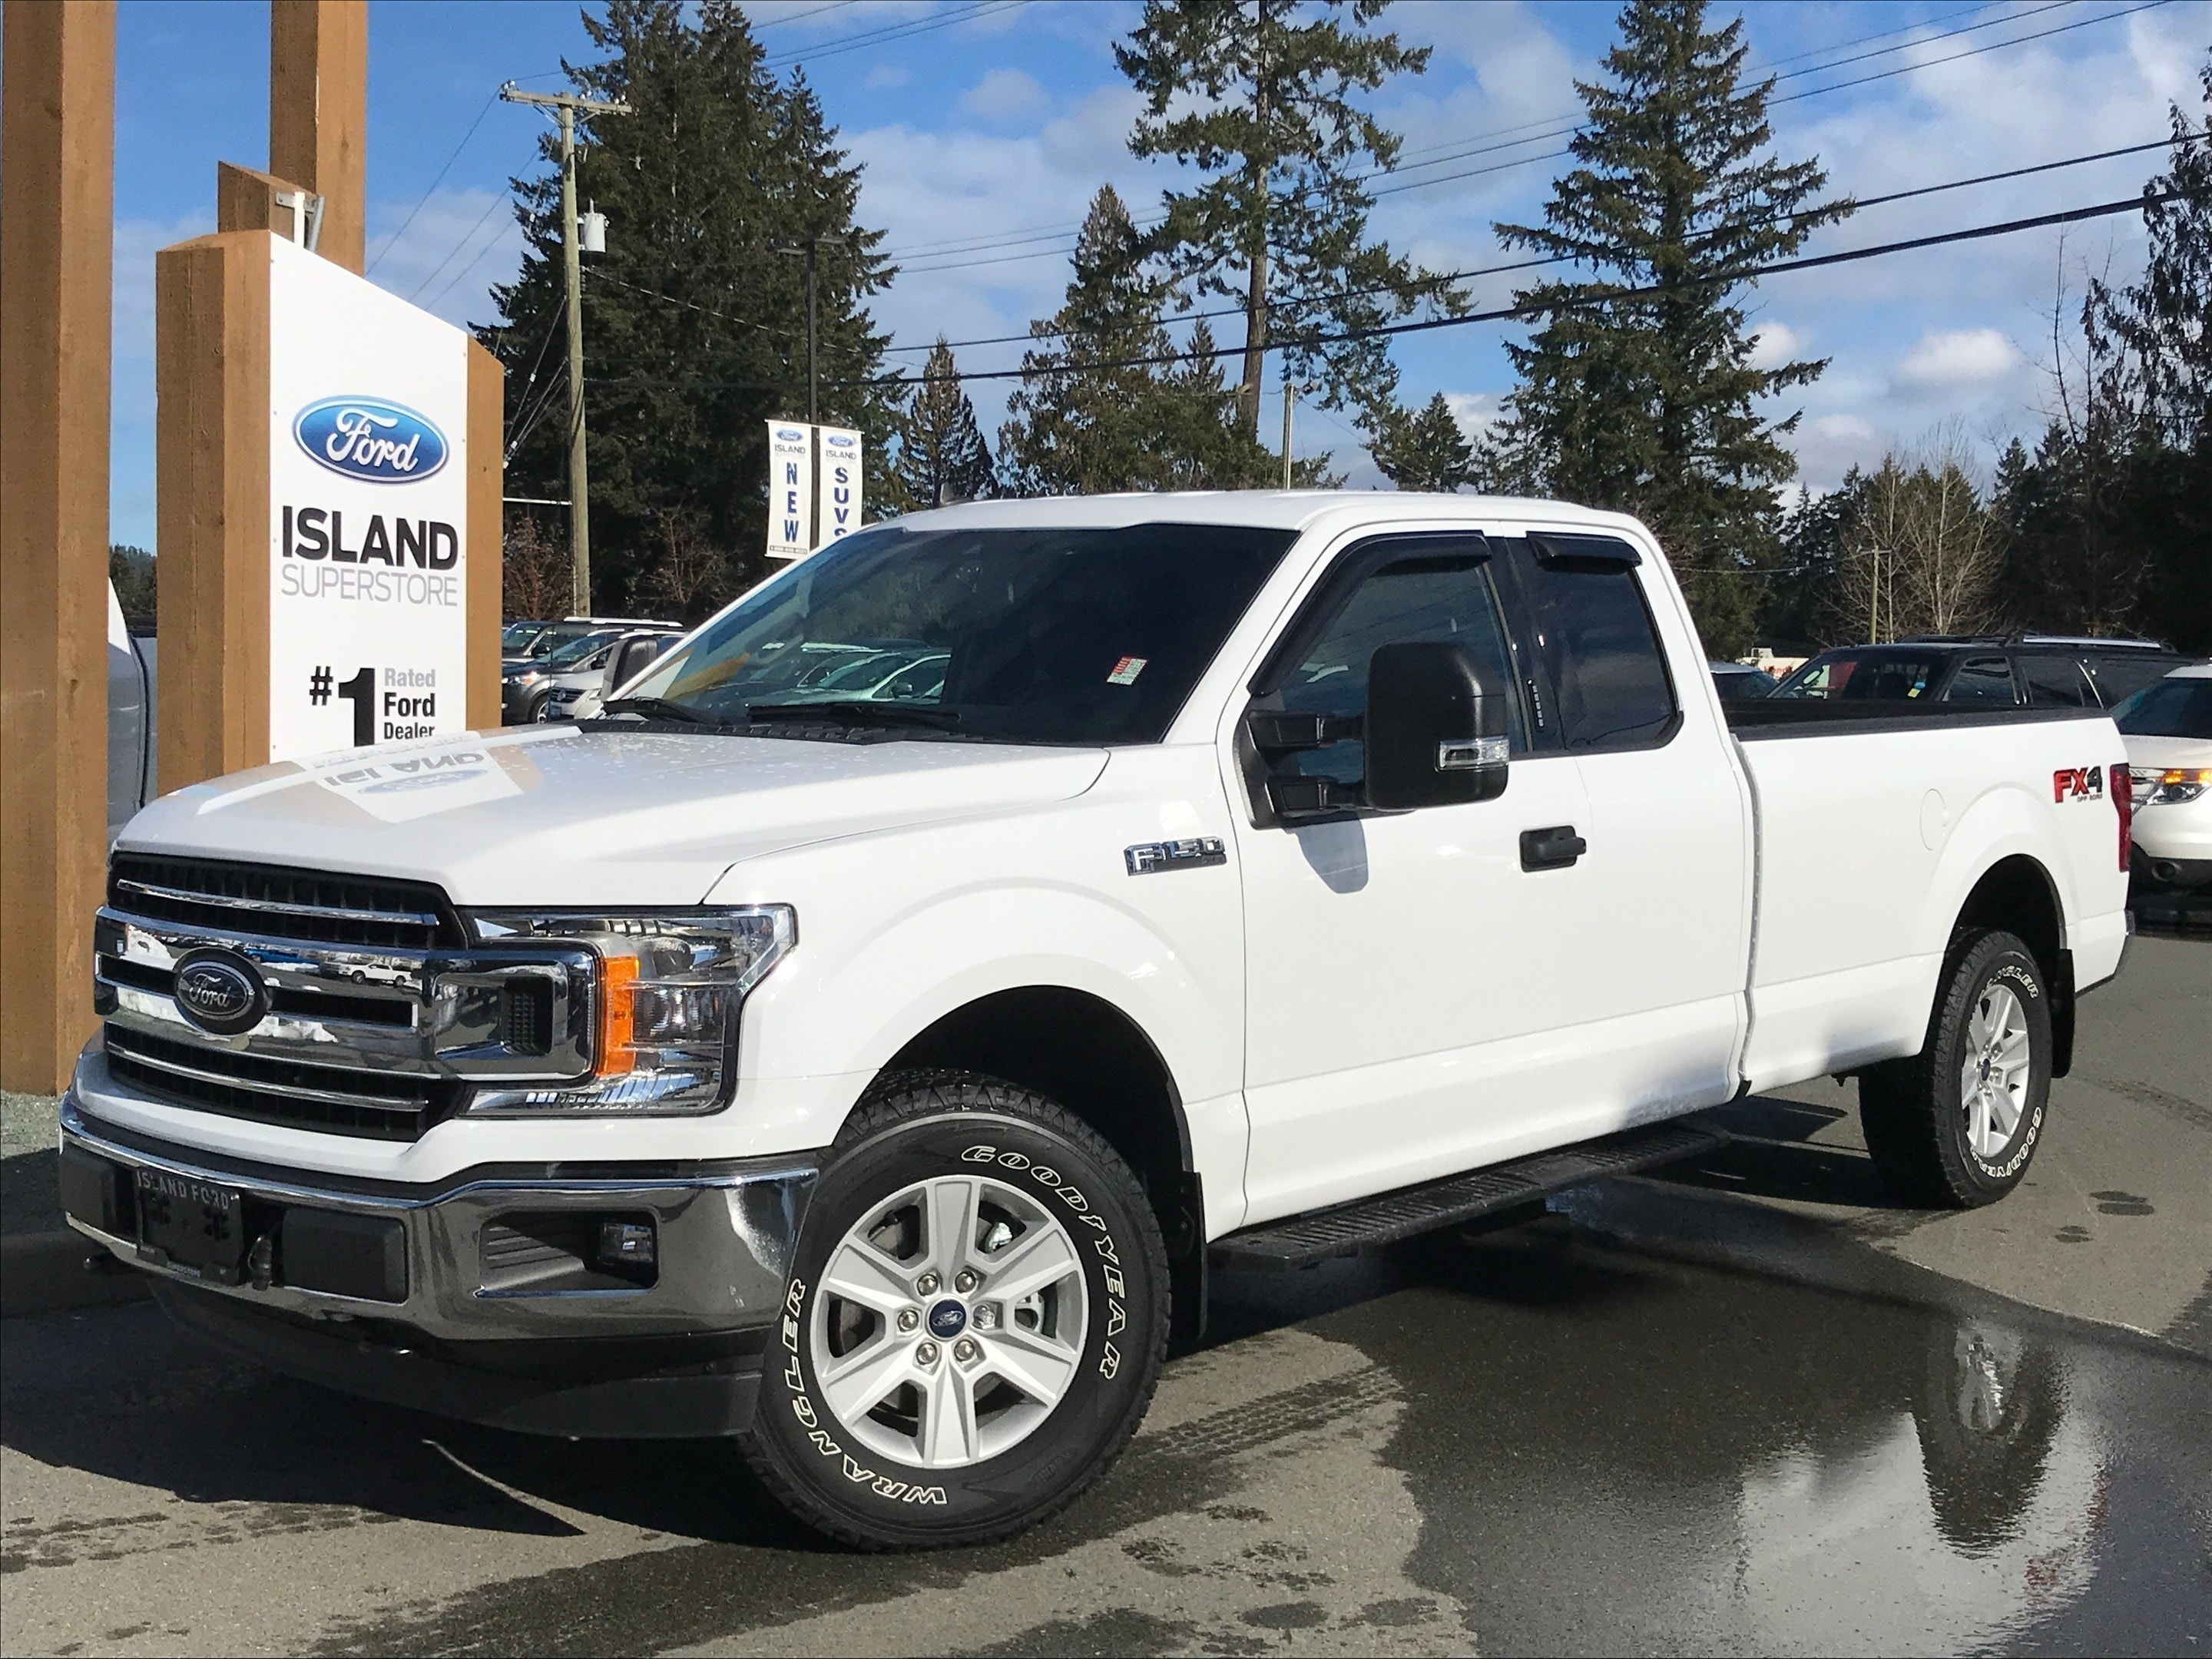 2019 Ford F-150 XLT 300A 3.5L SuperCab Truck SuperCab Styleside